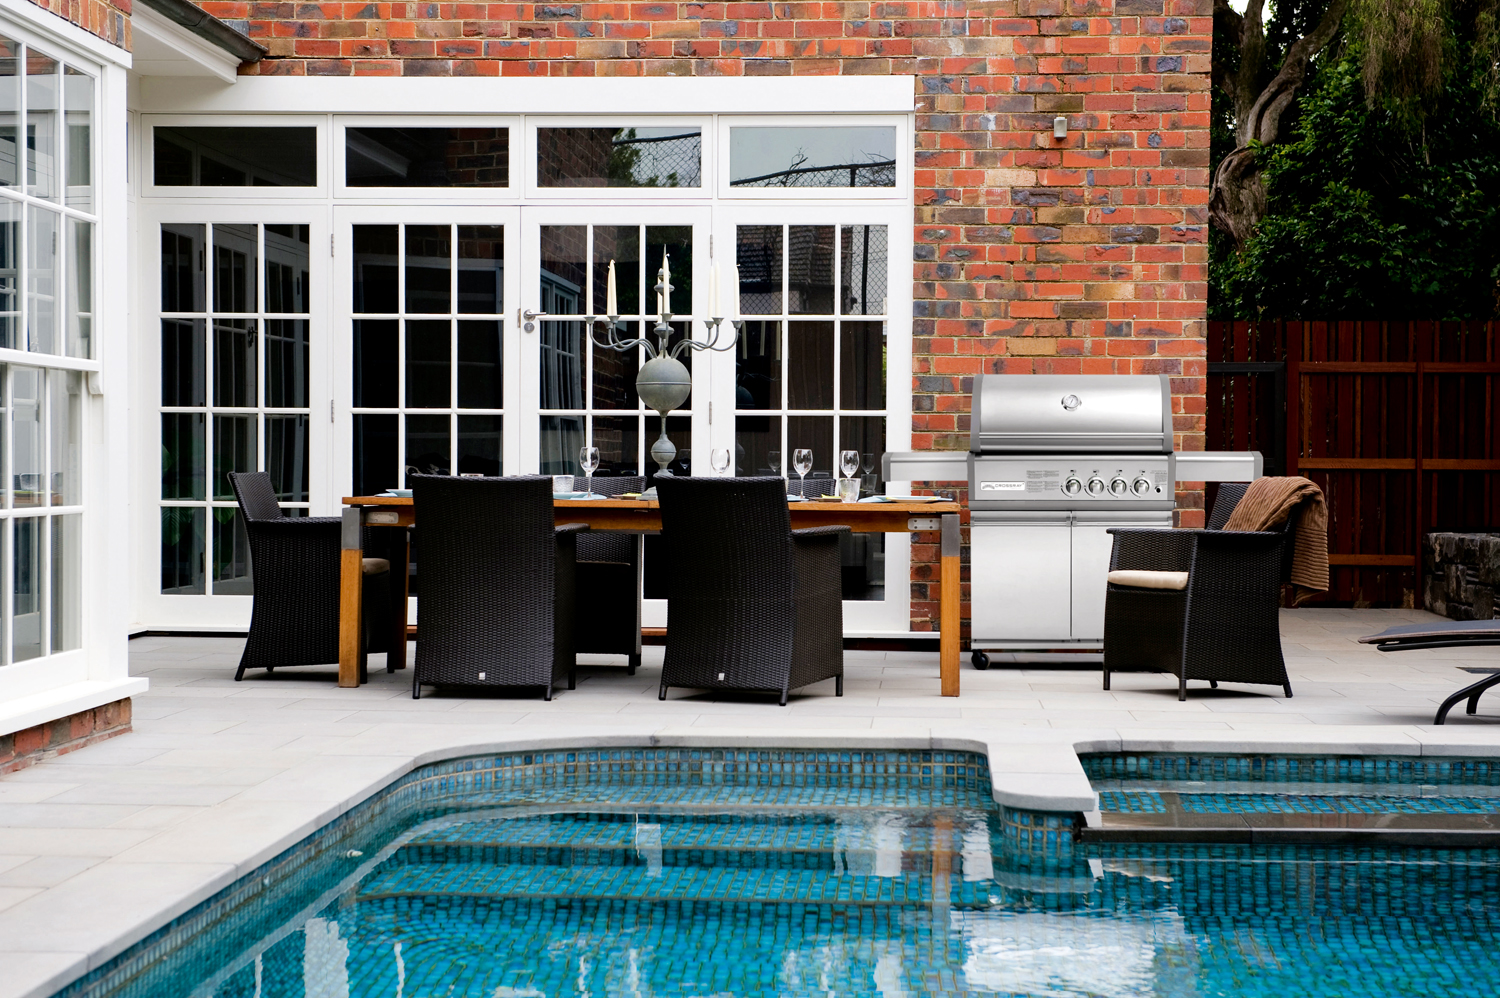 Why an infrared barbecue might spice up your outdoor kitchen